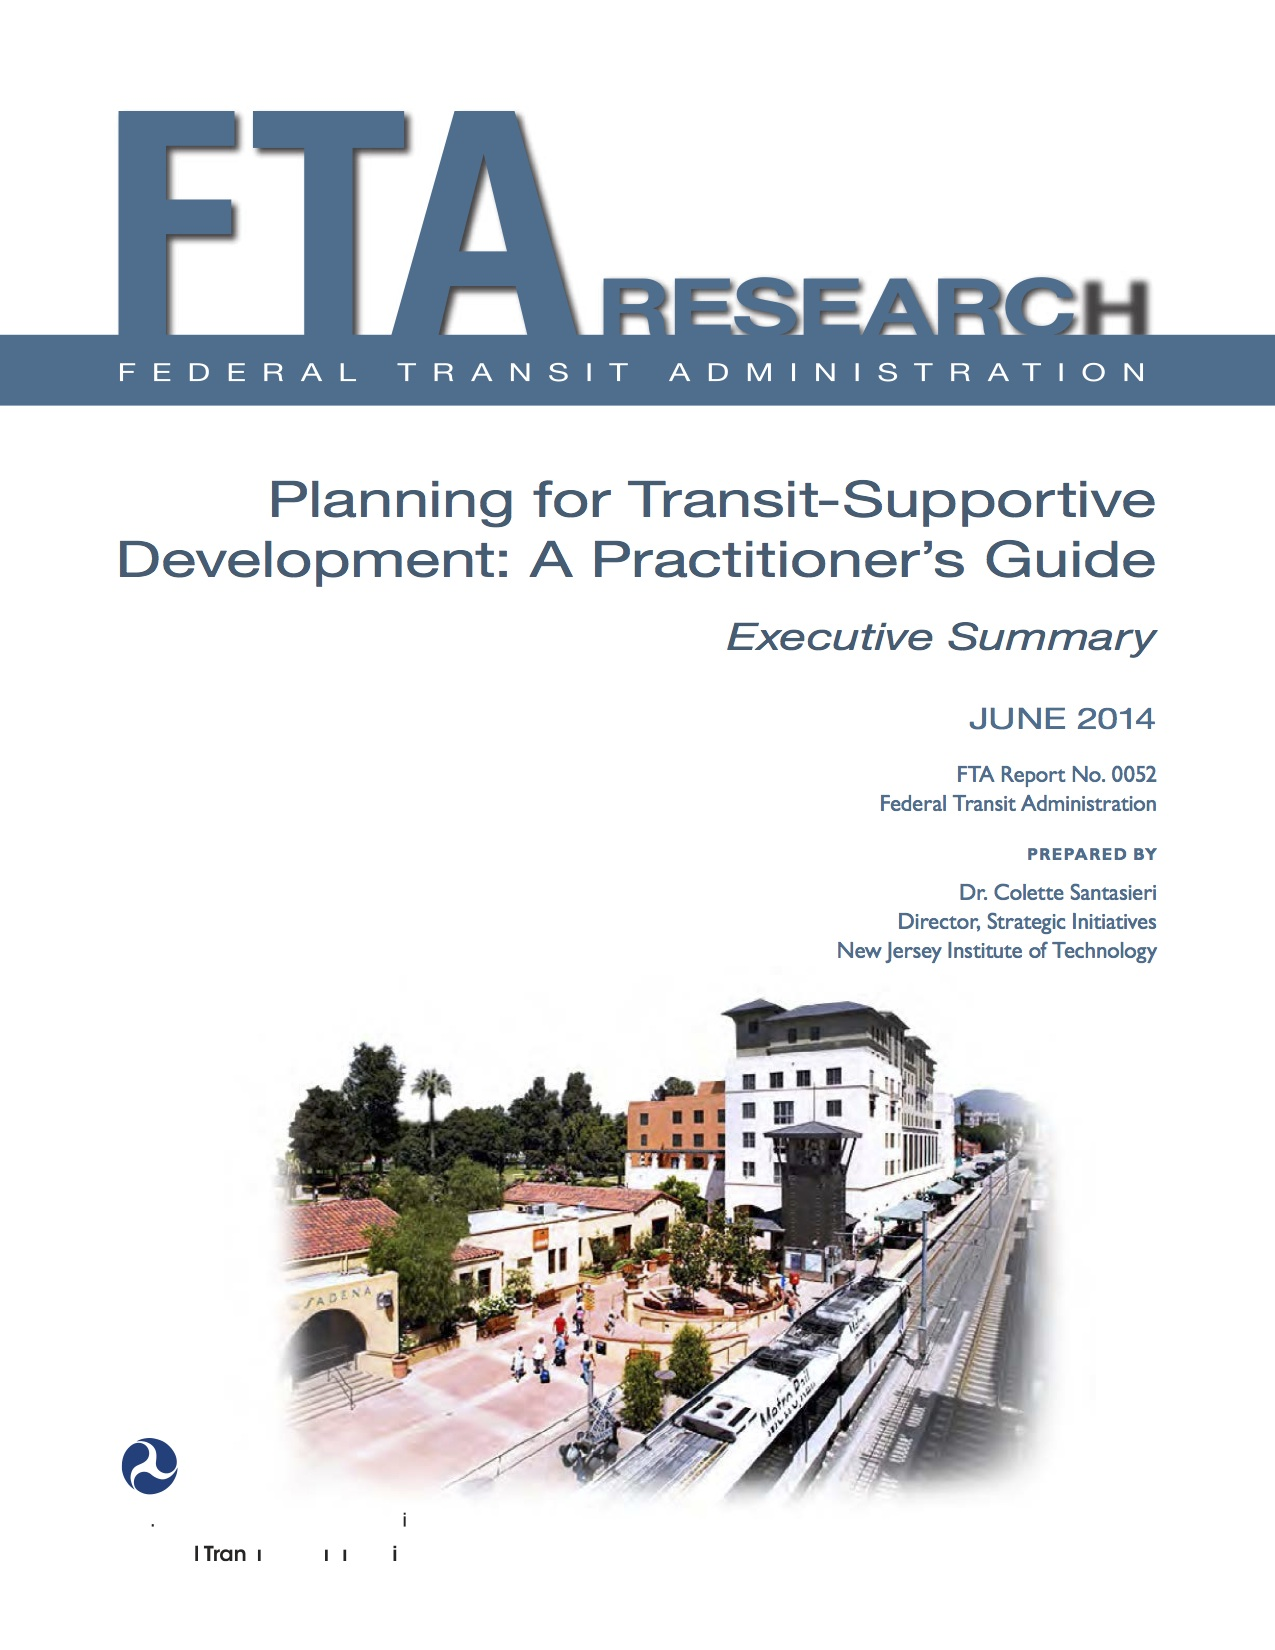 Planning for Transit-Supportive Development: A Practitioner's Guide